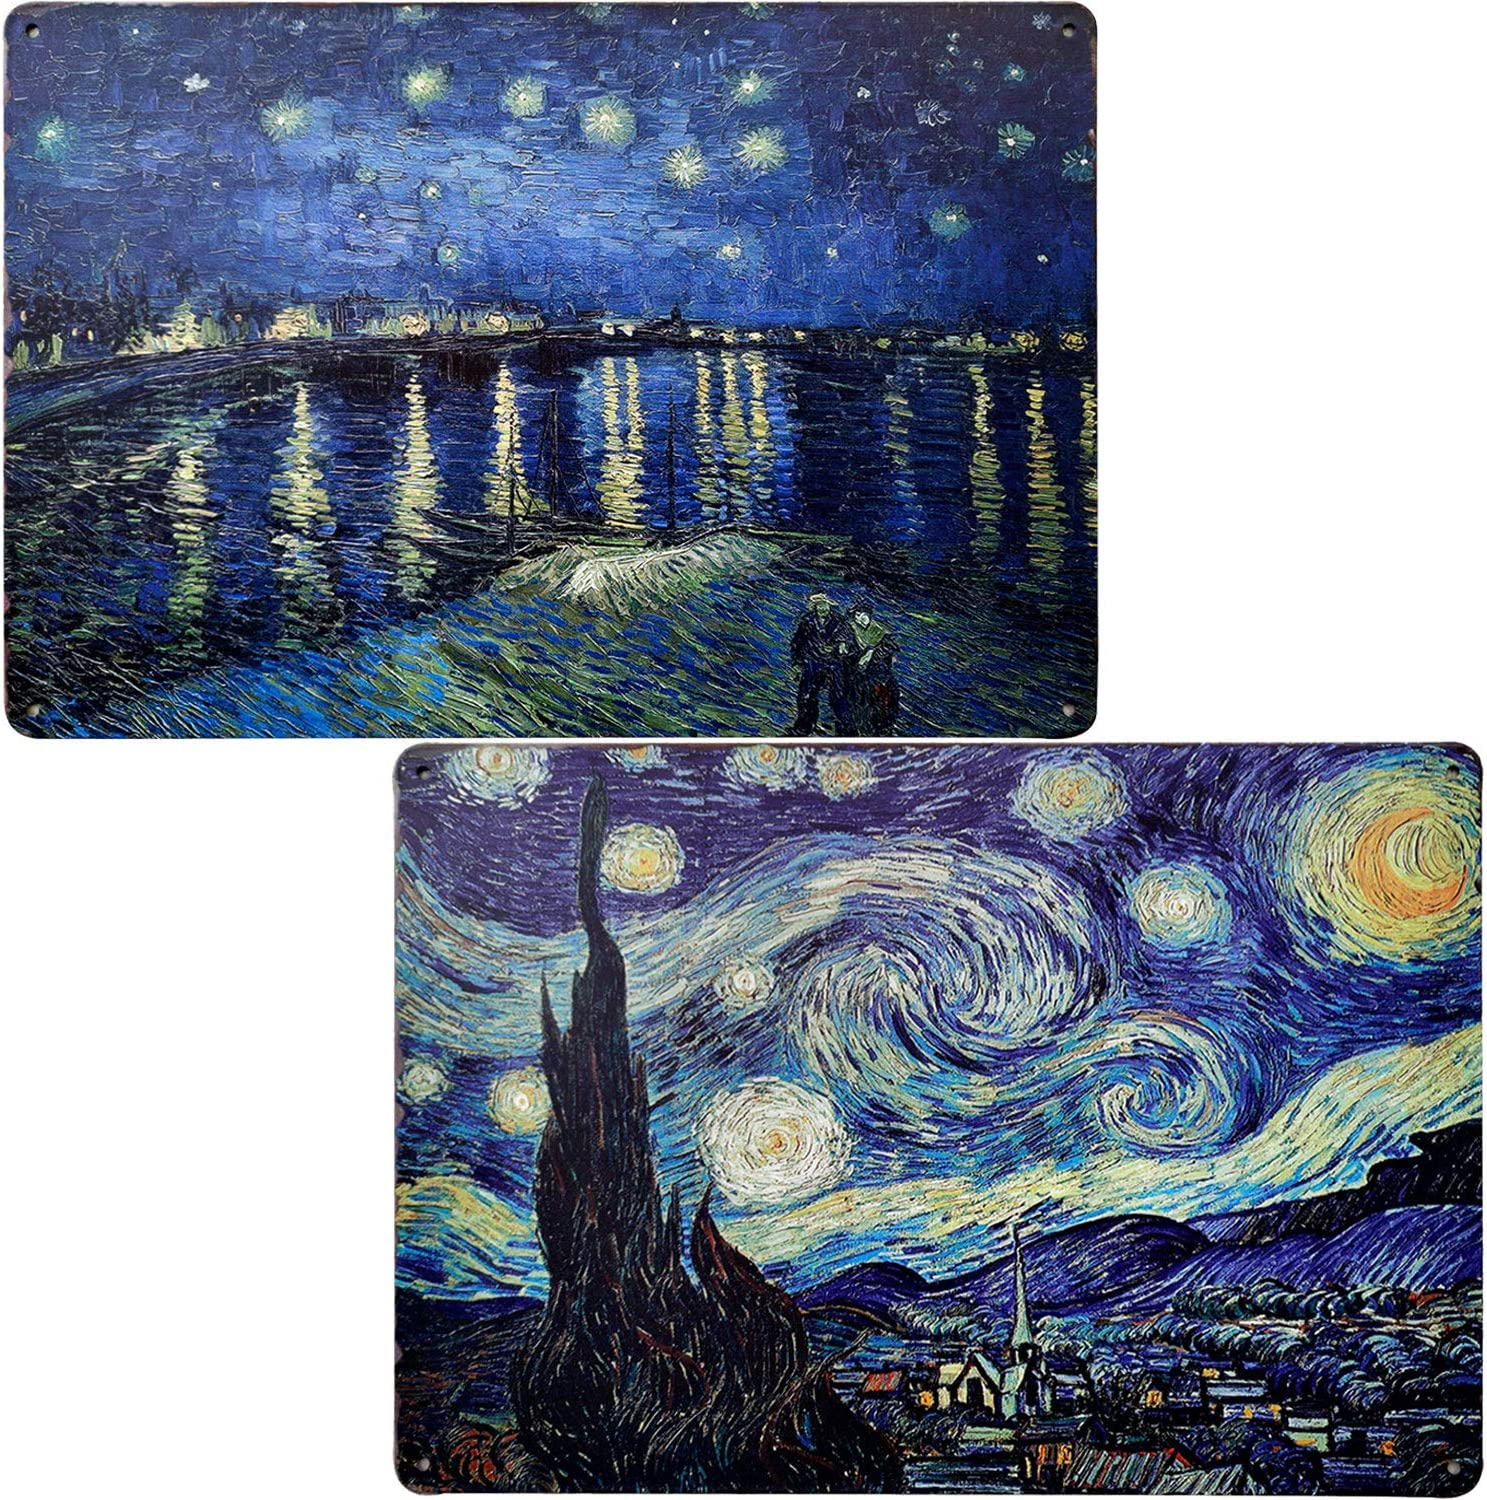 Landscape Painting The Starry Night Vintage Bar Metal Tin Sign Poster Style Wall Art Gifts for Bathroom Bedroom Living Room Decor 2Pcs-8X12Inch